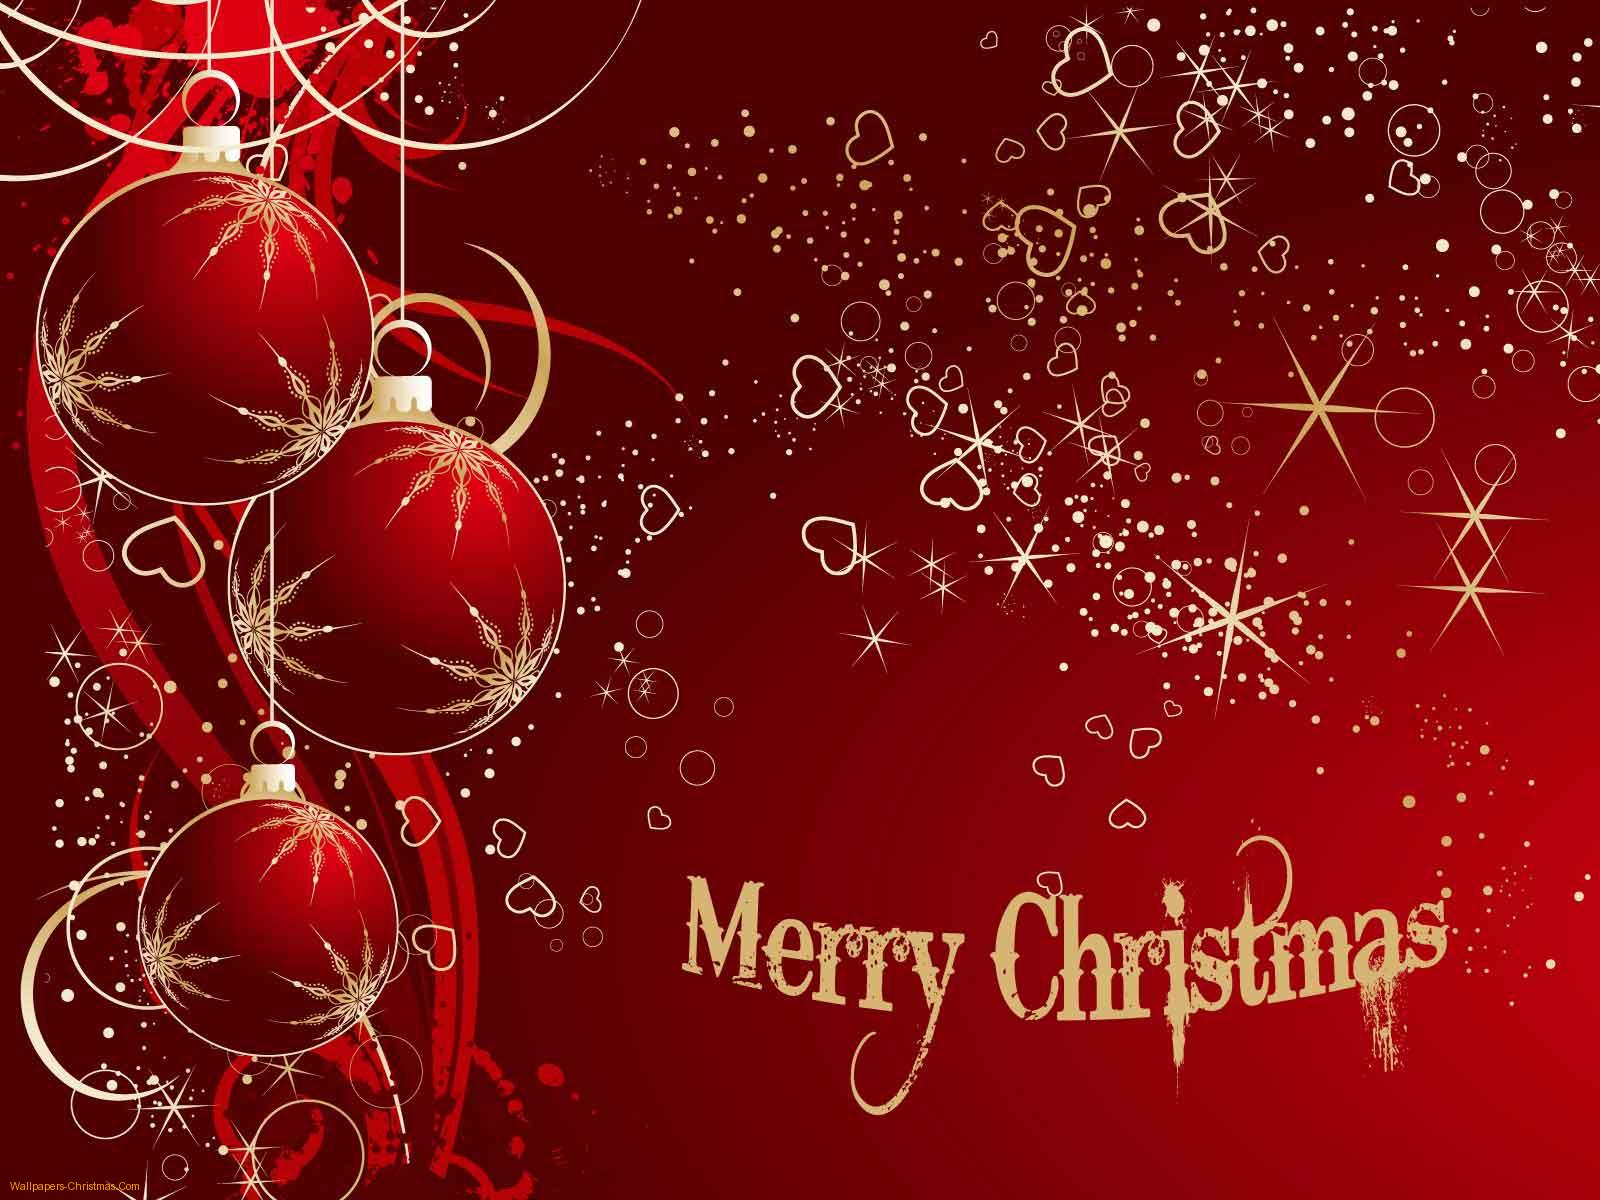 PC Backgrounds : merry xmas wallpapers Merry Xmas  Marry Christmas Wallpapers Group  1600x1200